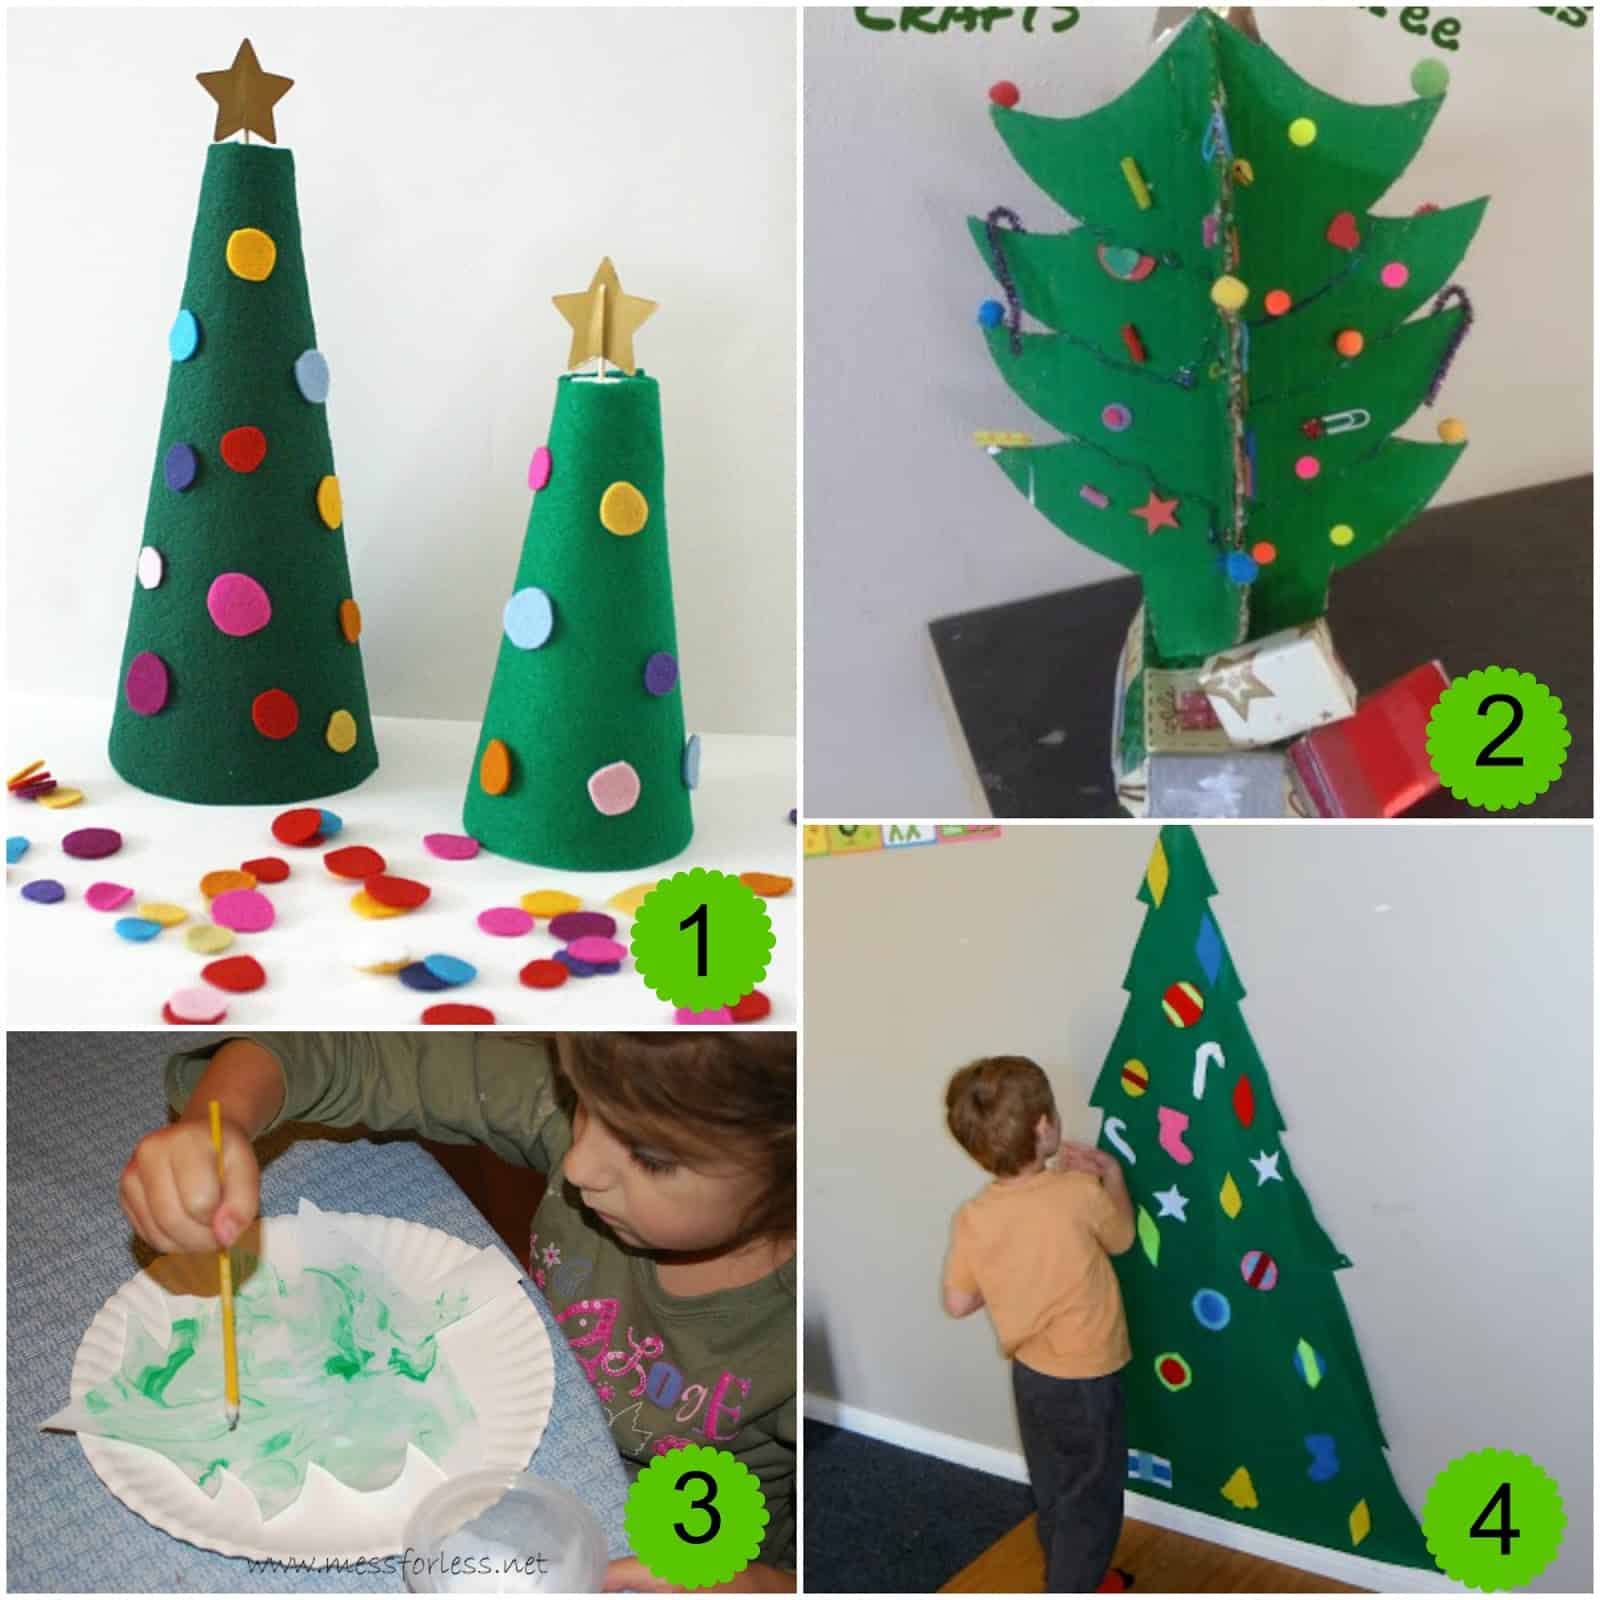 10 Christmas Tree Activities and the Weekly Kids Co-Op - Mess for Less